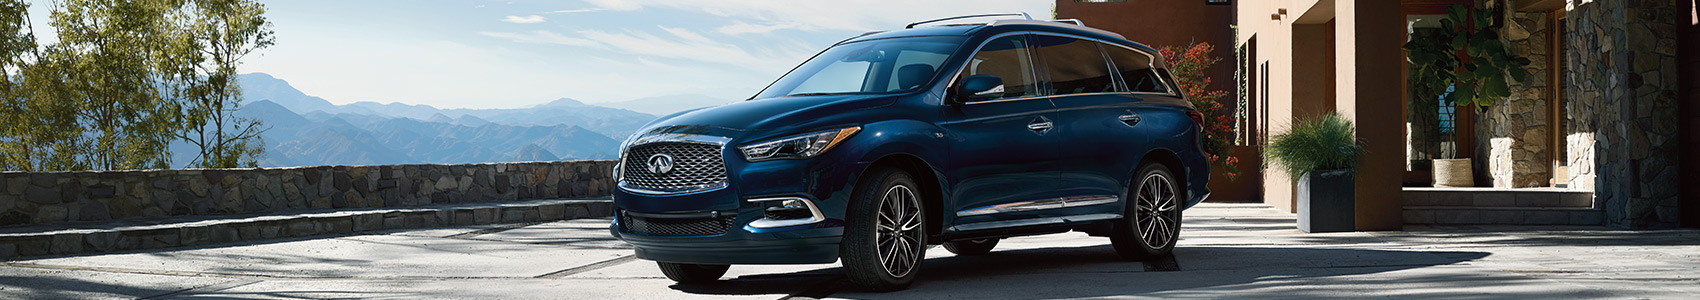 2016 Infiniti QX60 at Auto West Infiniti in Richmond BC